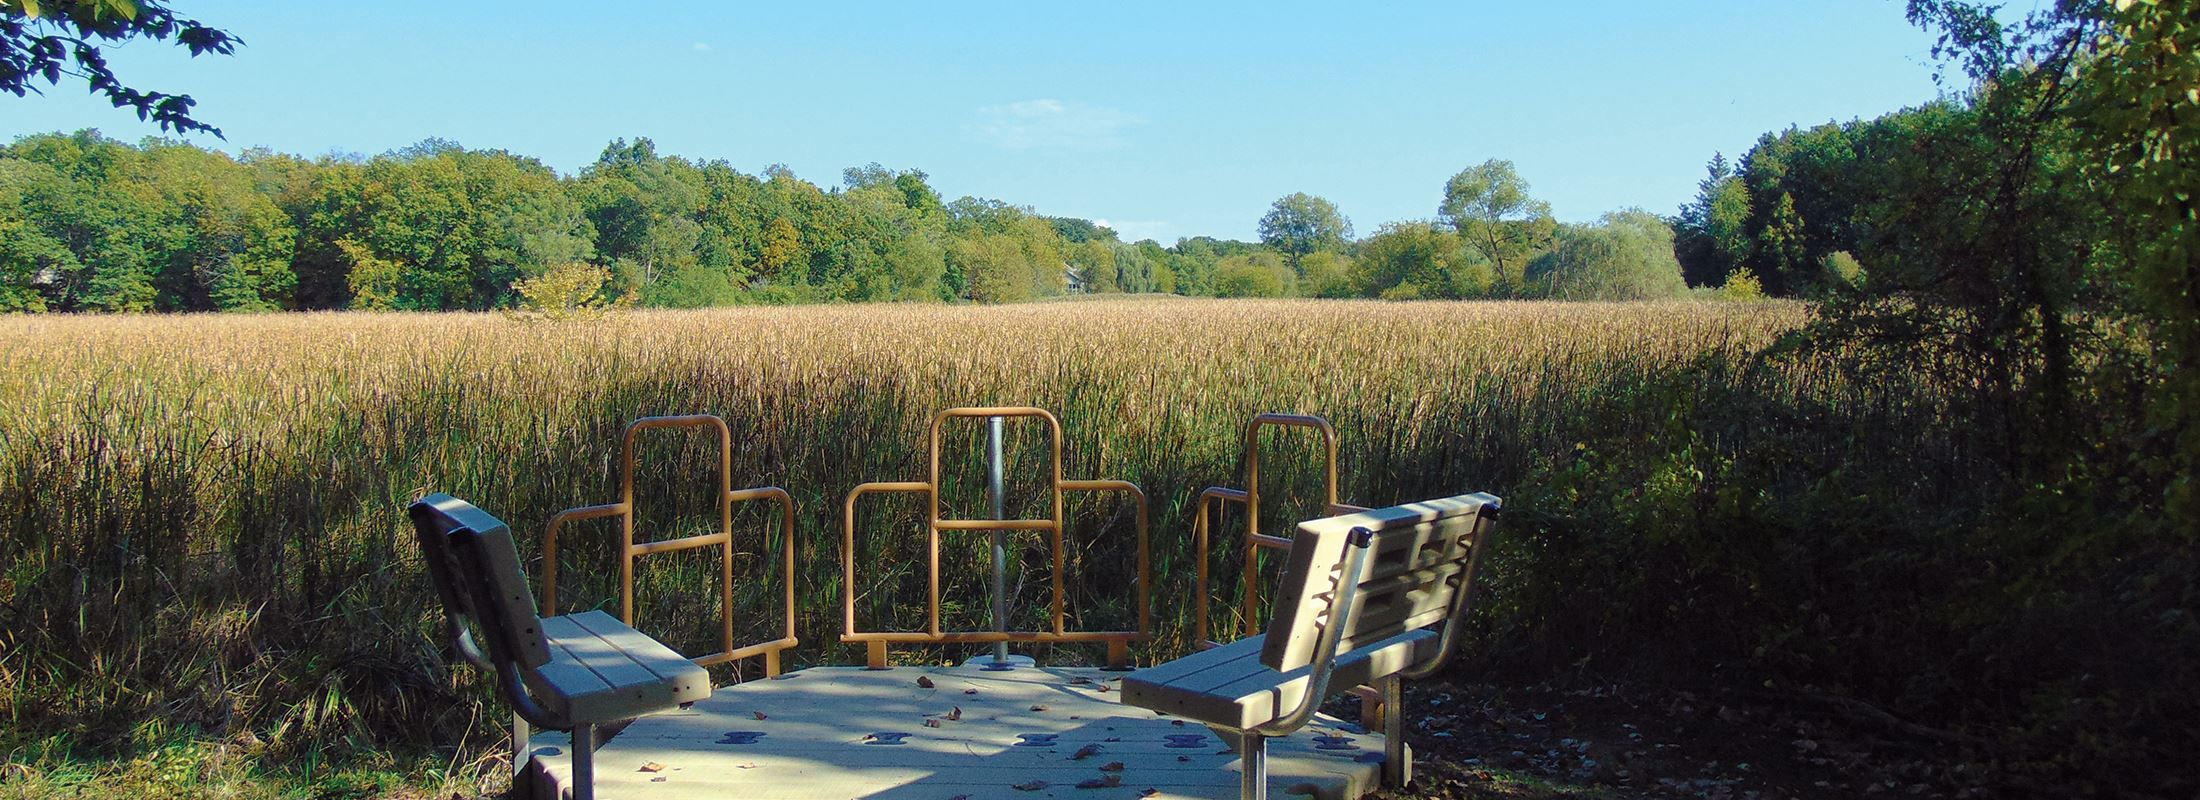 Overlook of Wetland at Brierwoods Park